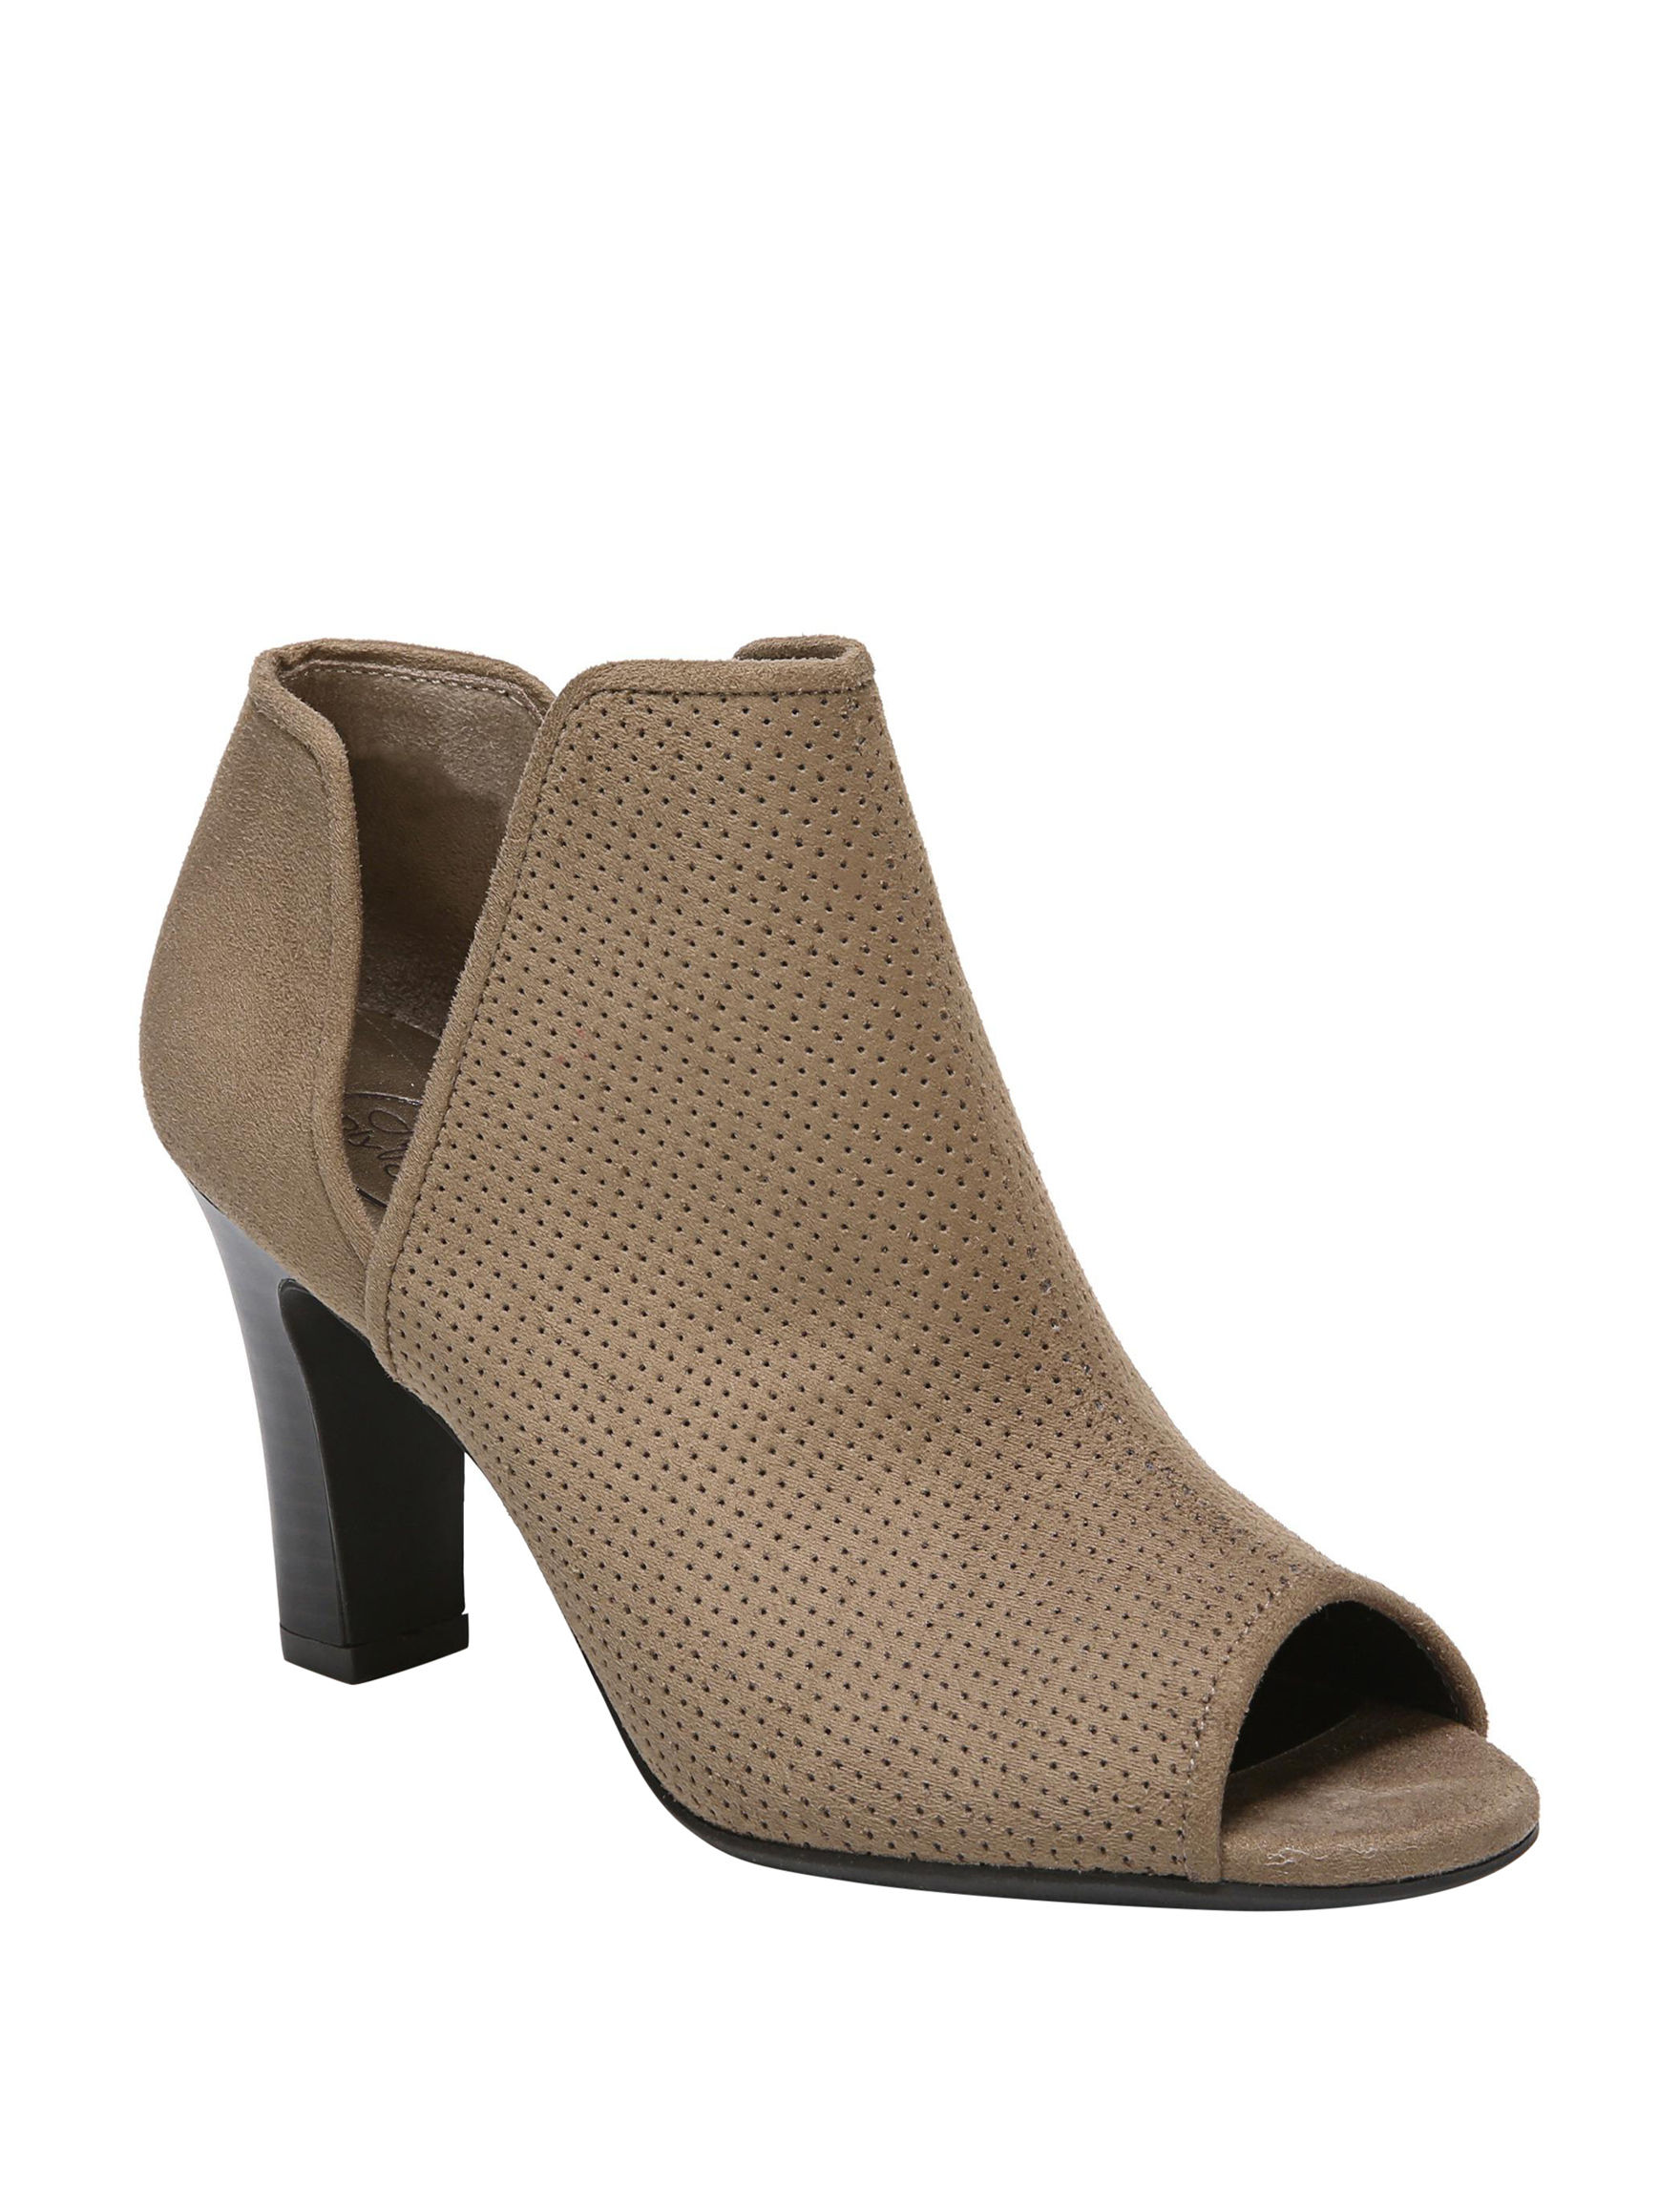 Lifestride Taupe Ankle Boots & Booties Peep Toe